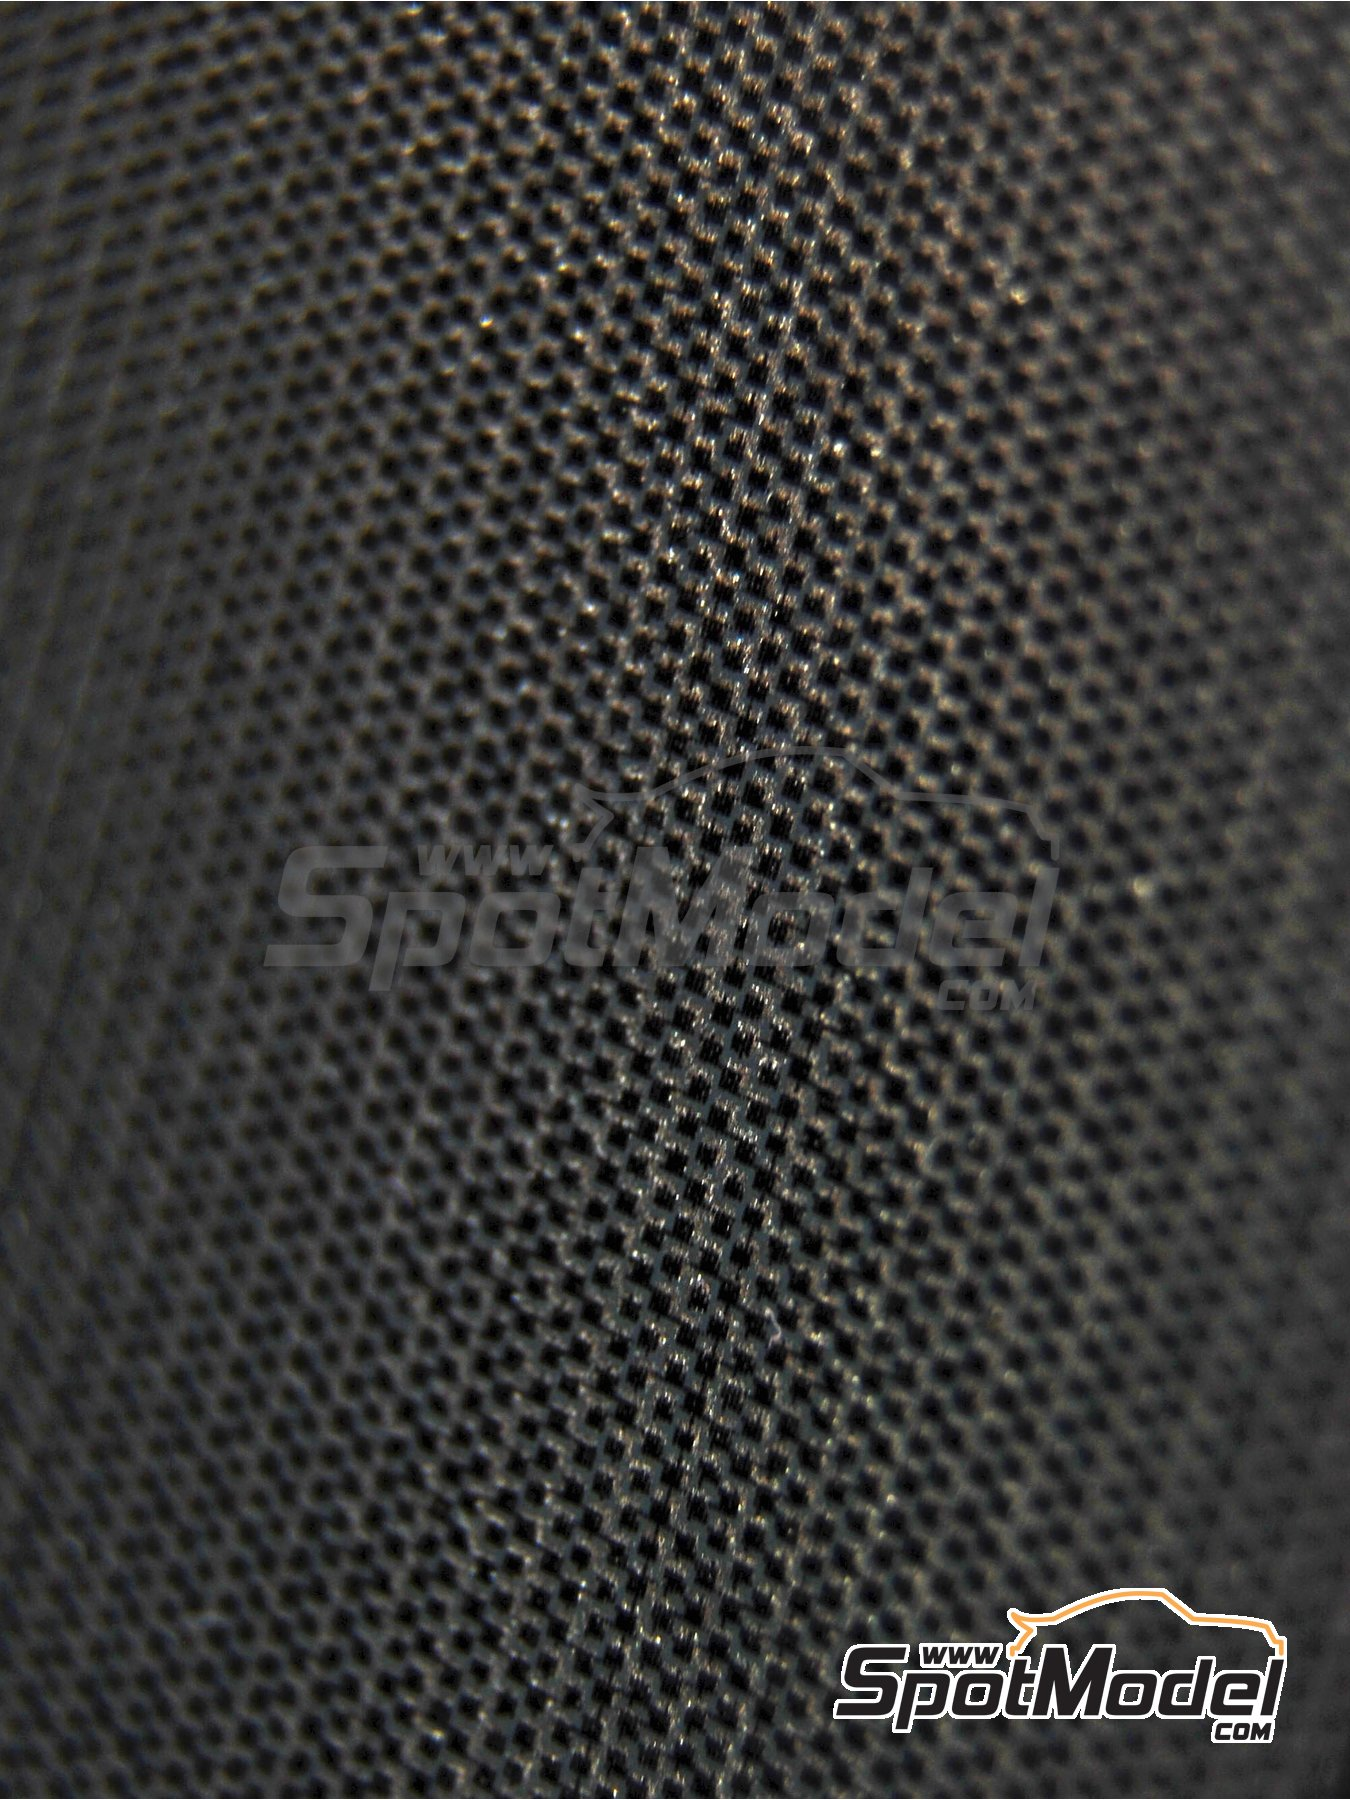 Carbon Fiber high definition plain weave black on pewter big size pattern | Decals in 1/20 scale manufactured by Scale Motorsport (ref. SM1520) image